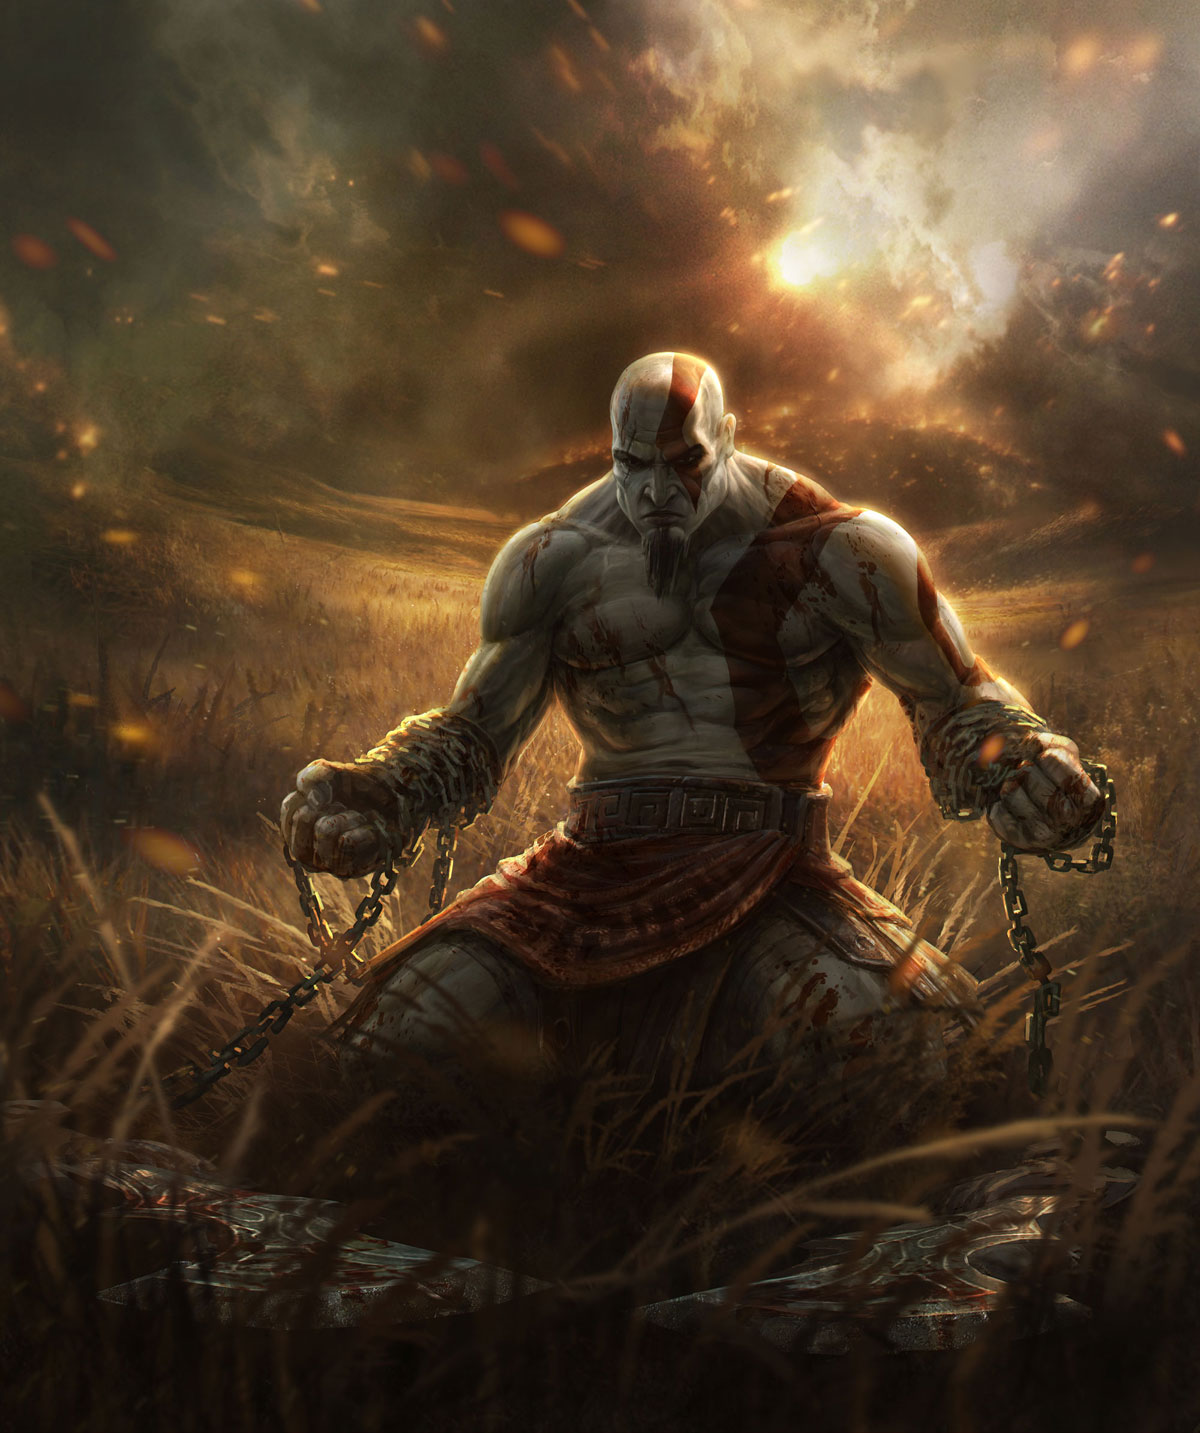 God of War  image from  Sony Playstation